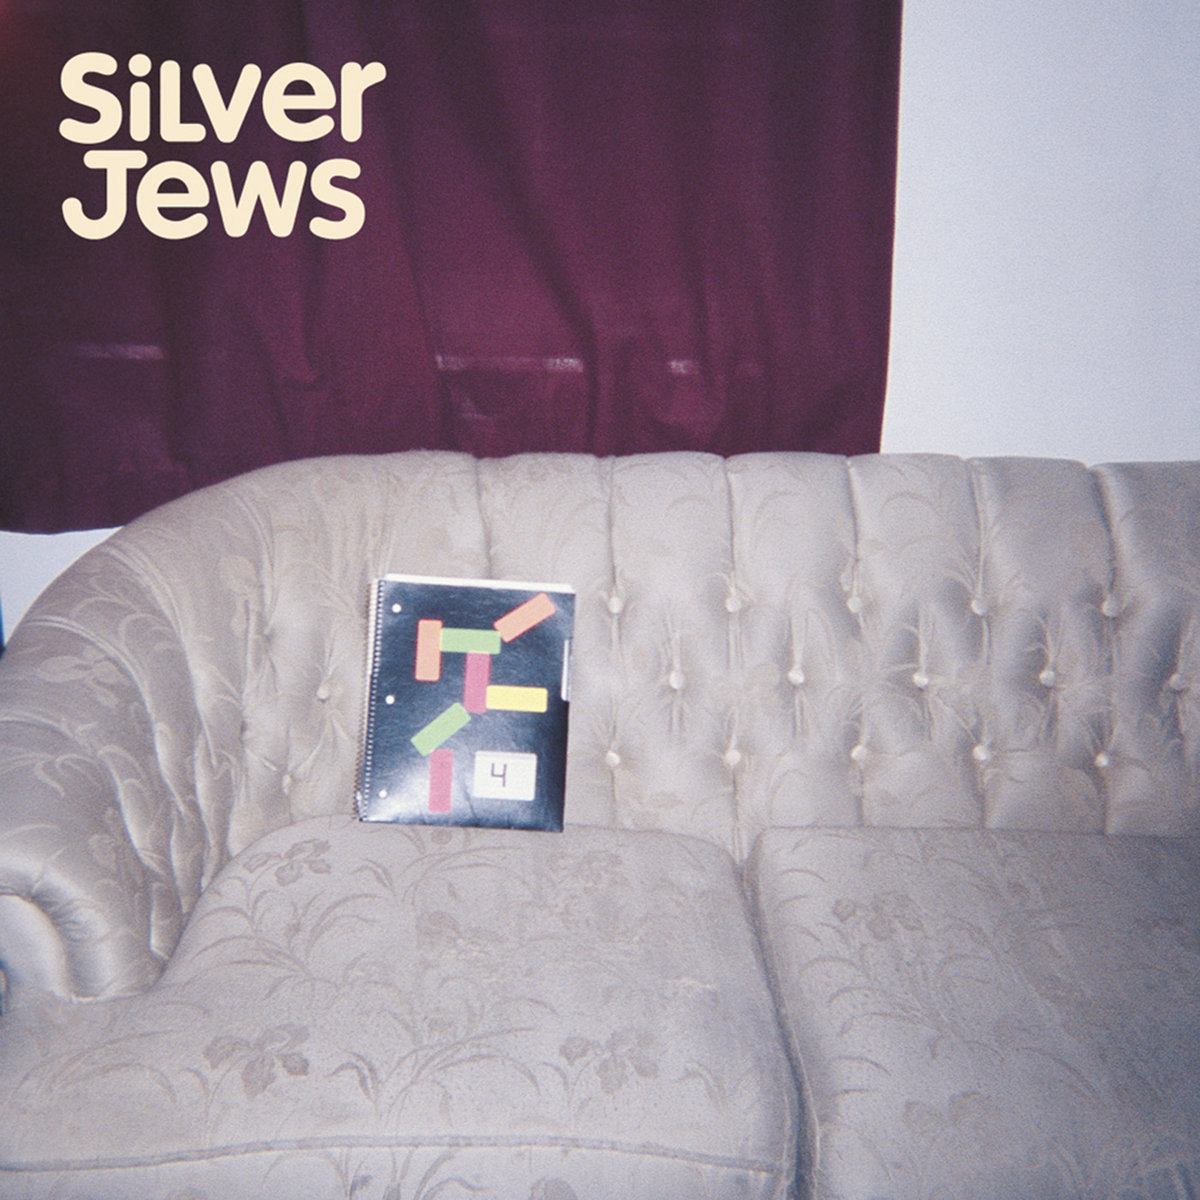 silver jews discography bright flight